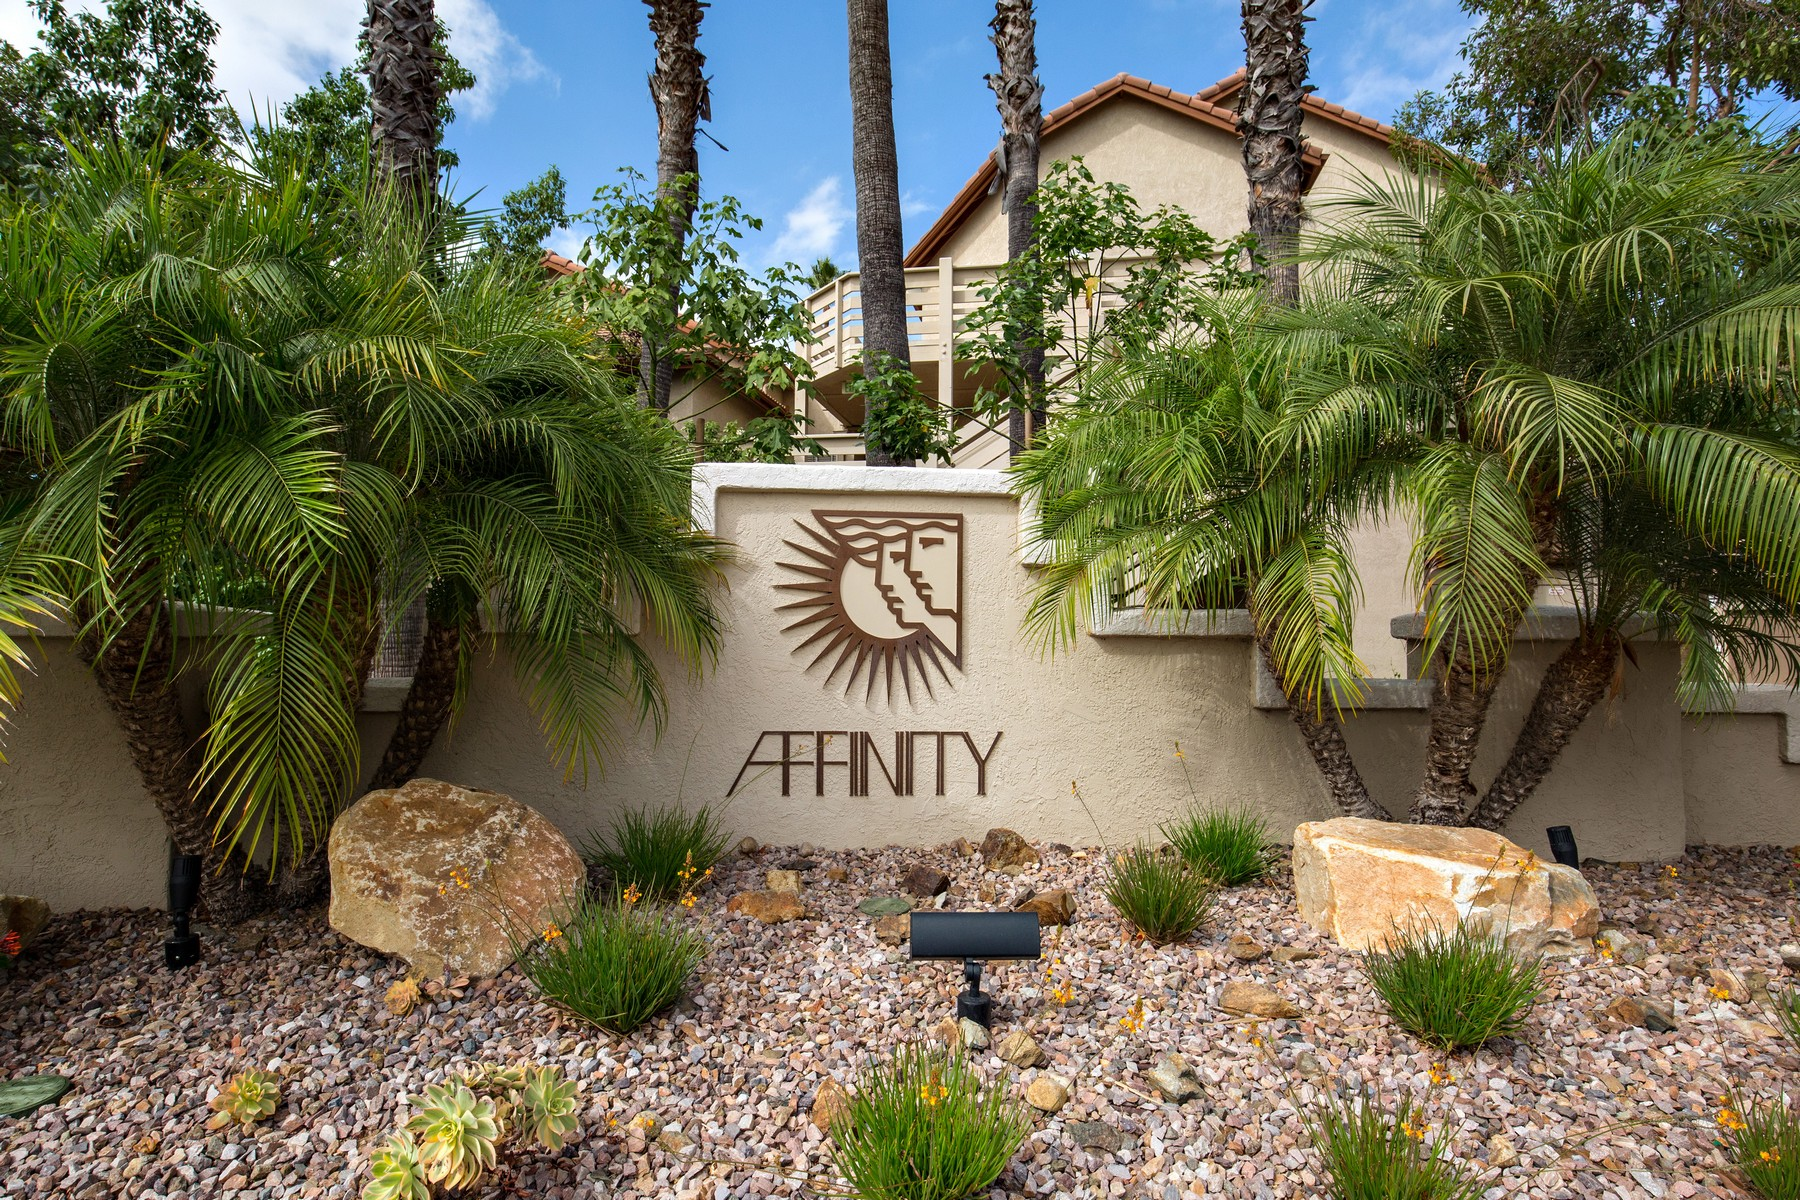 Additional photo for property listing at 11325  Affinity Court 135 11325  Affinity Court 157 San Diego, Калифорния 92131 Соединенные Штаты